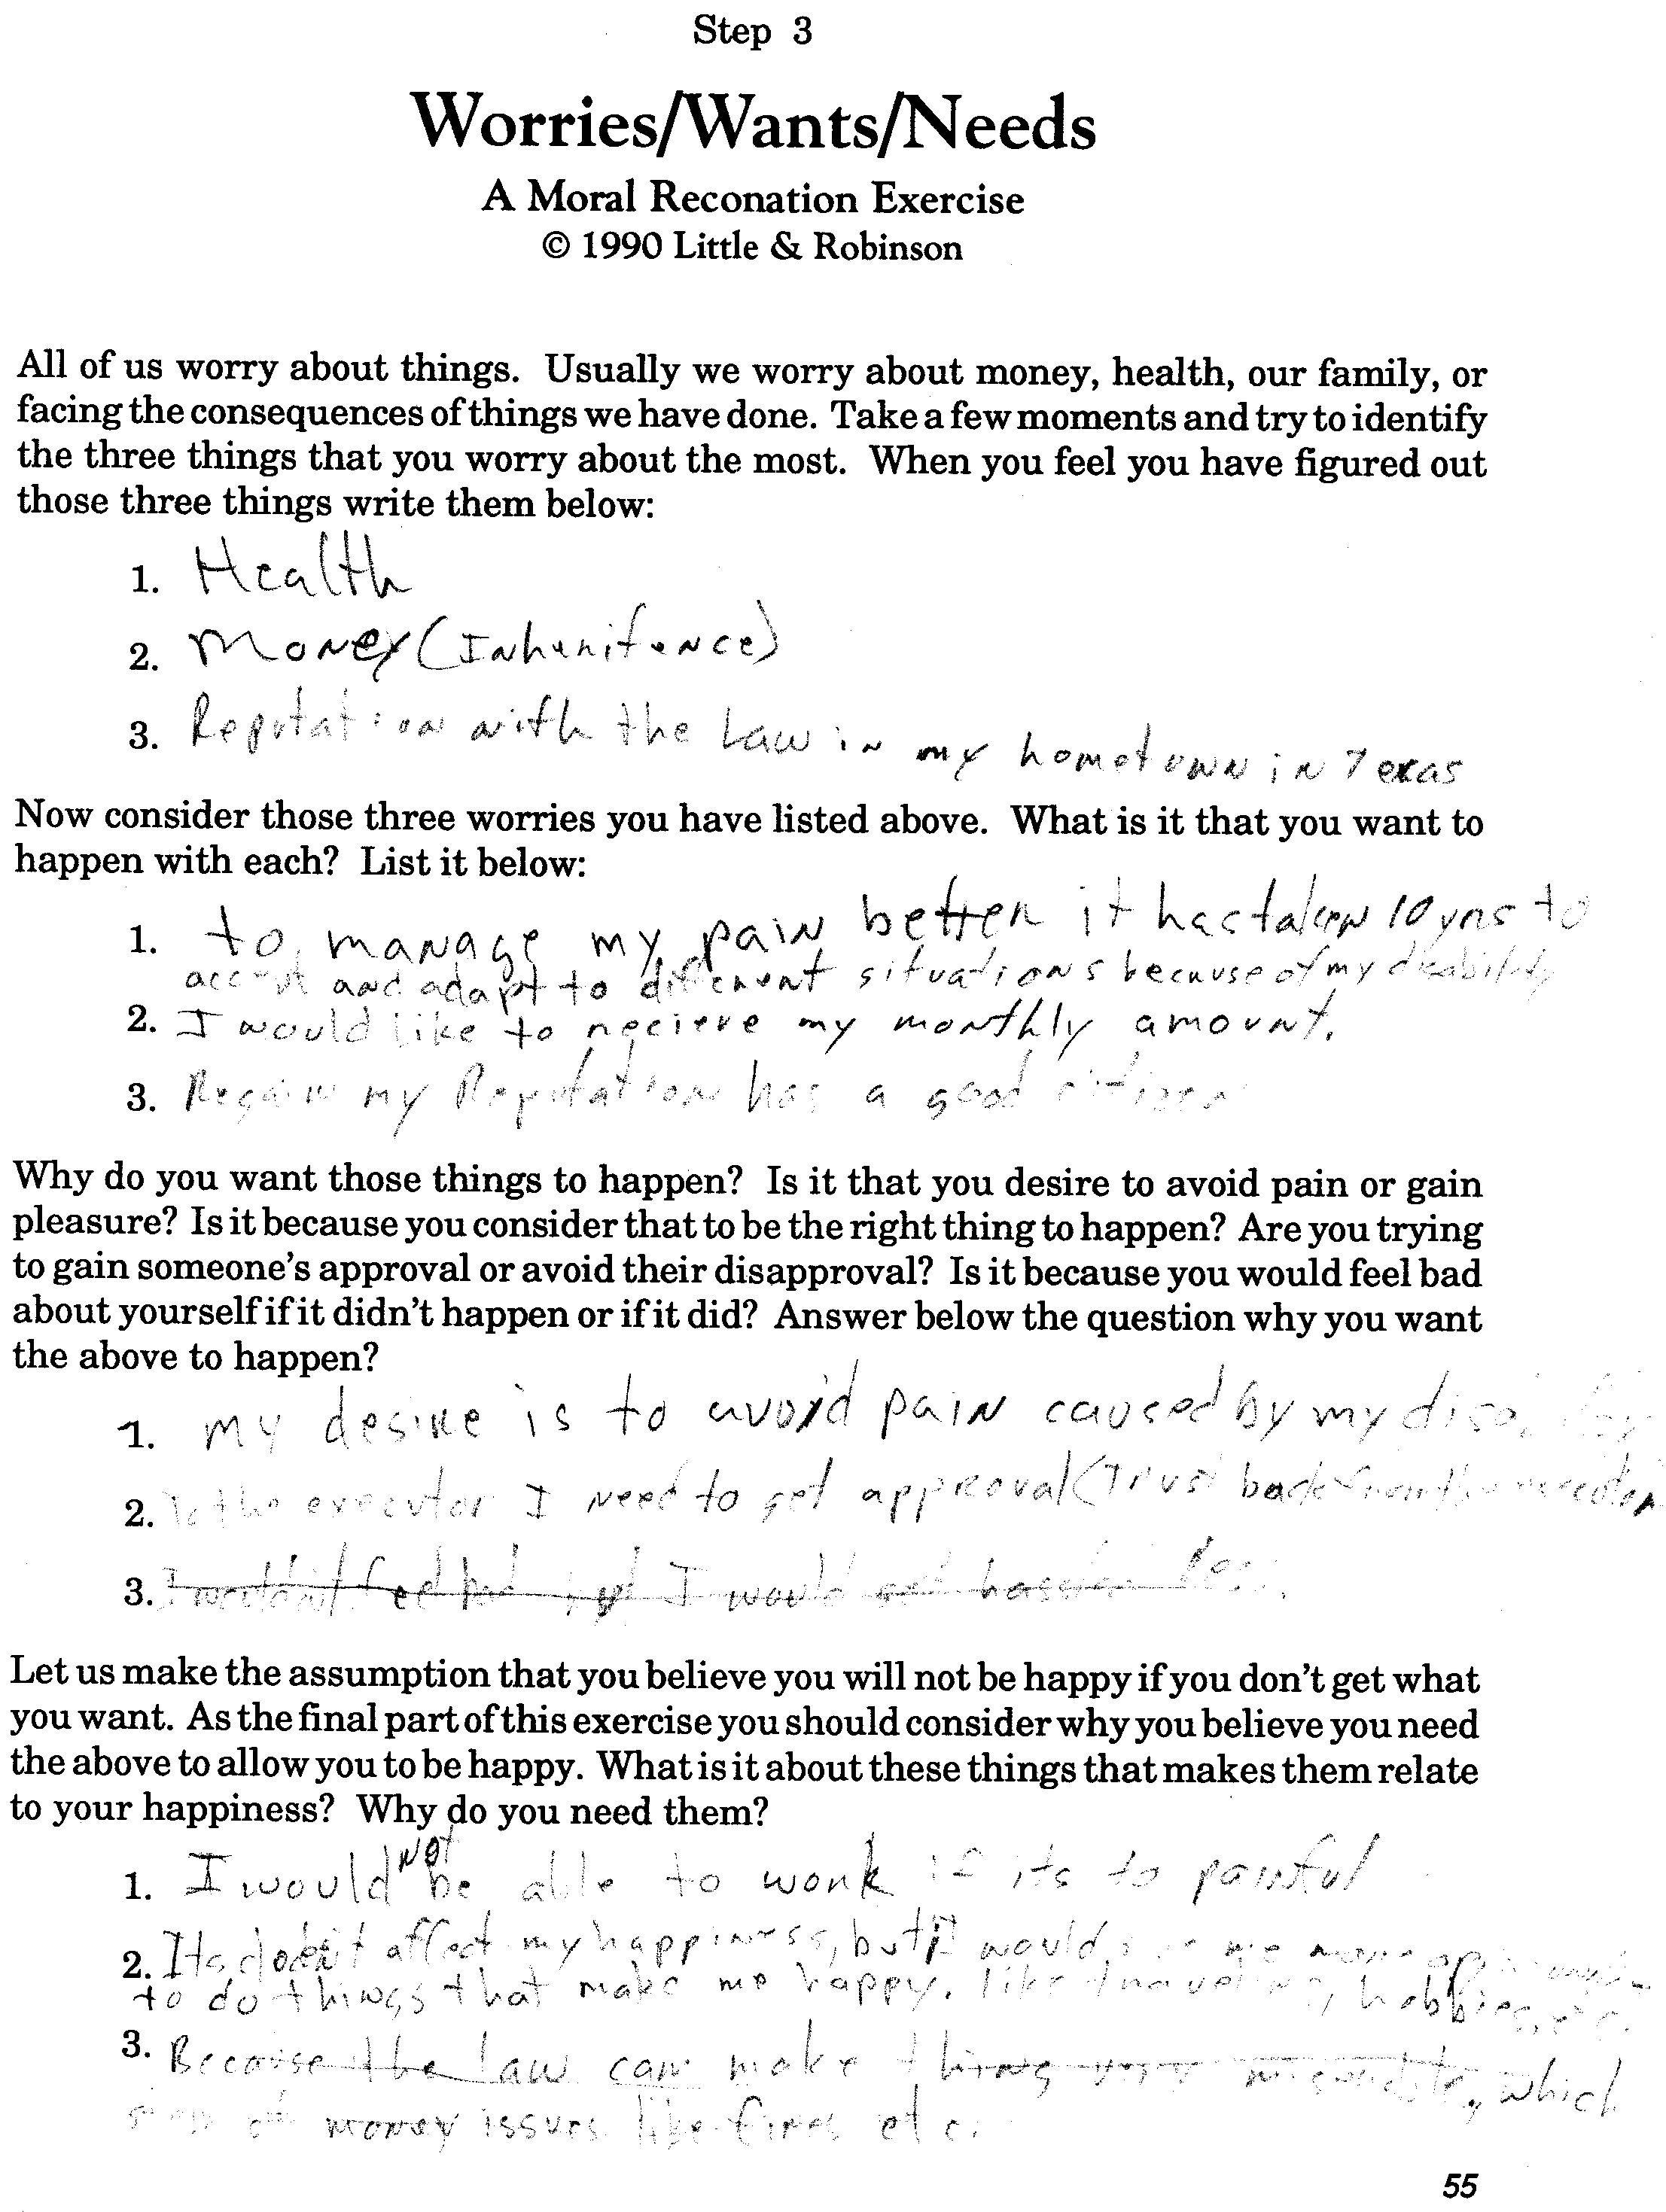 worksheet 10th Step Worksheet drugcourt caryhayes2003 step 3 worries wants needs jpg